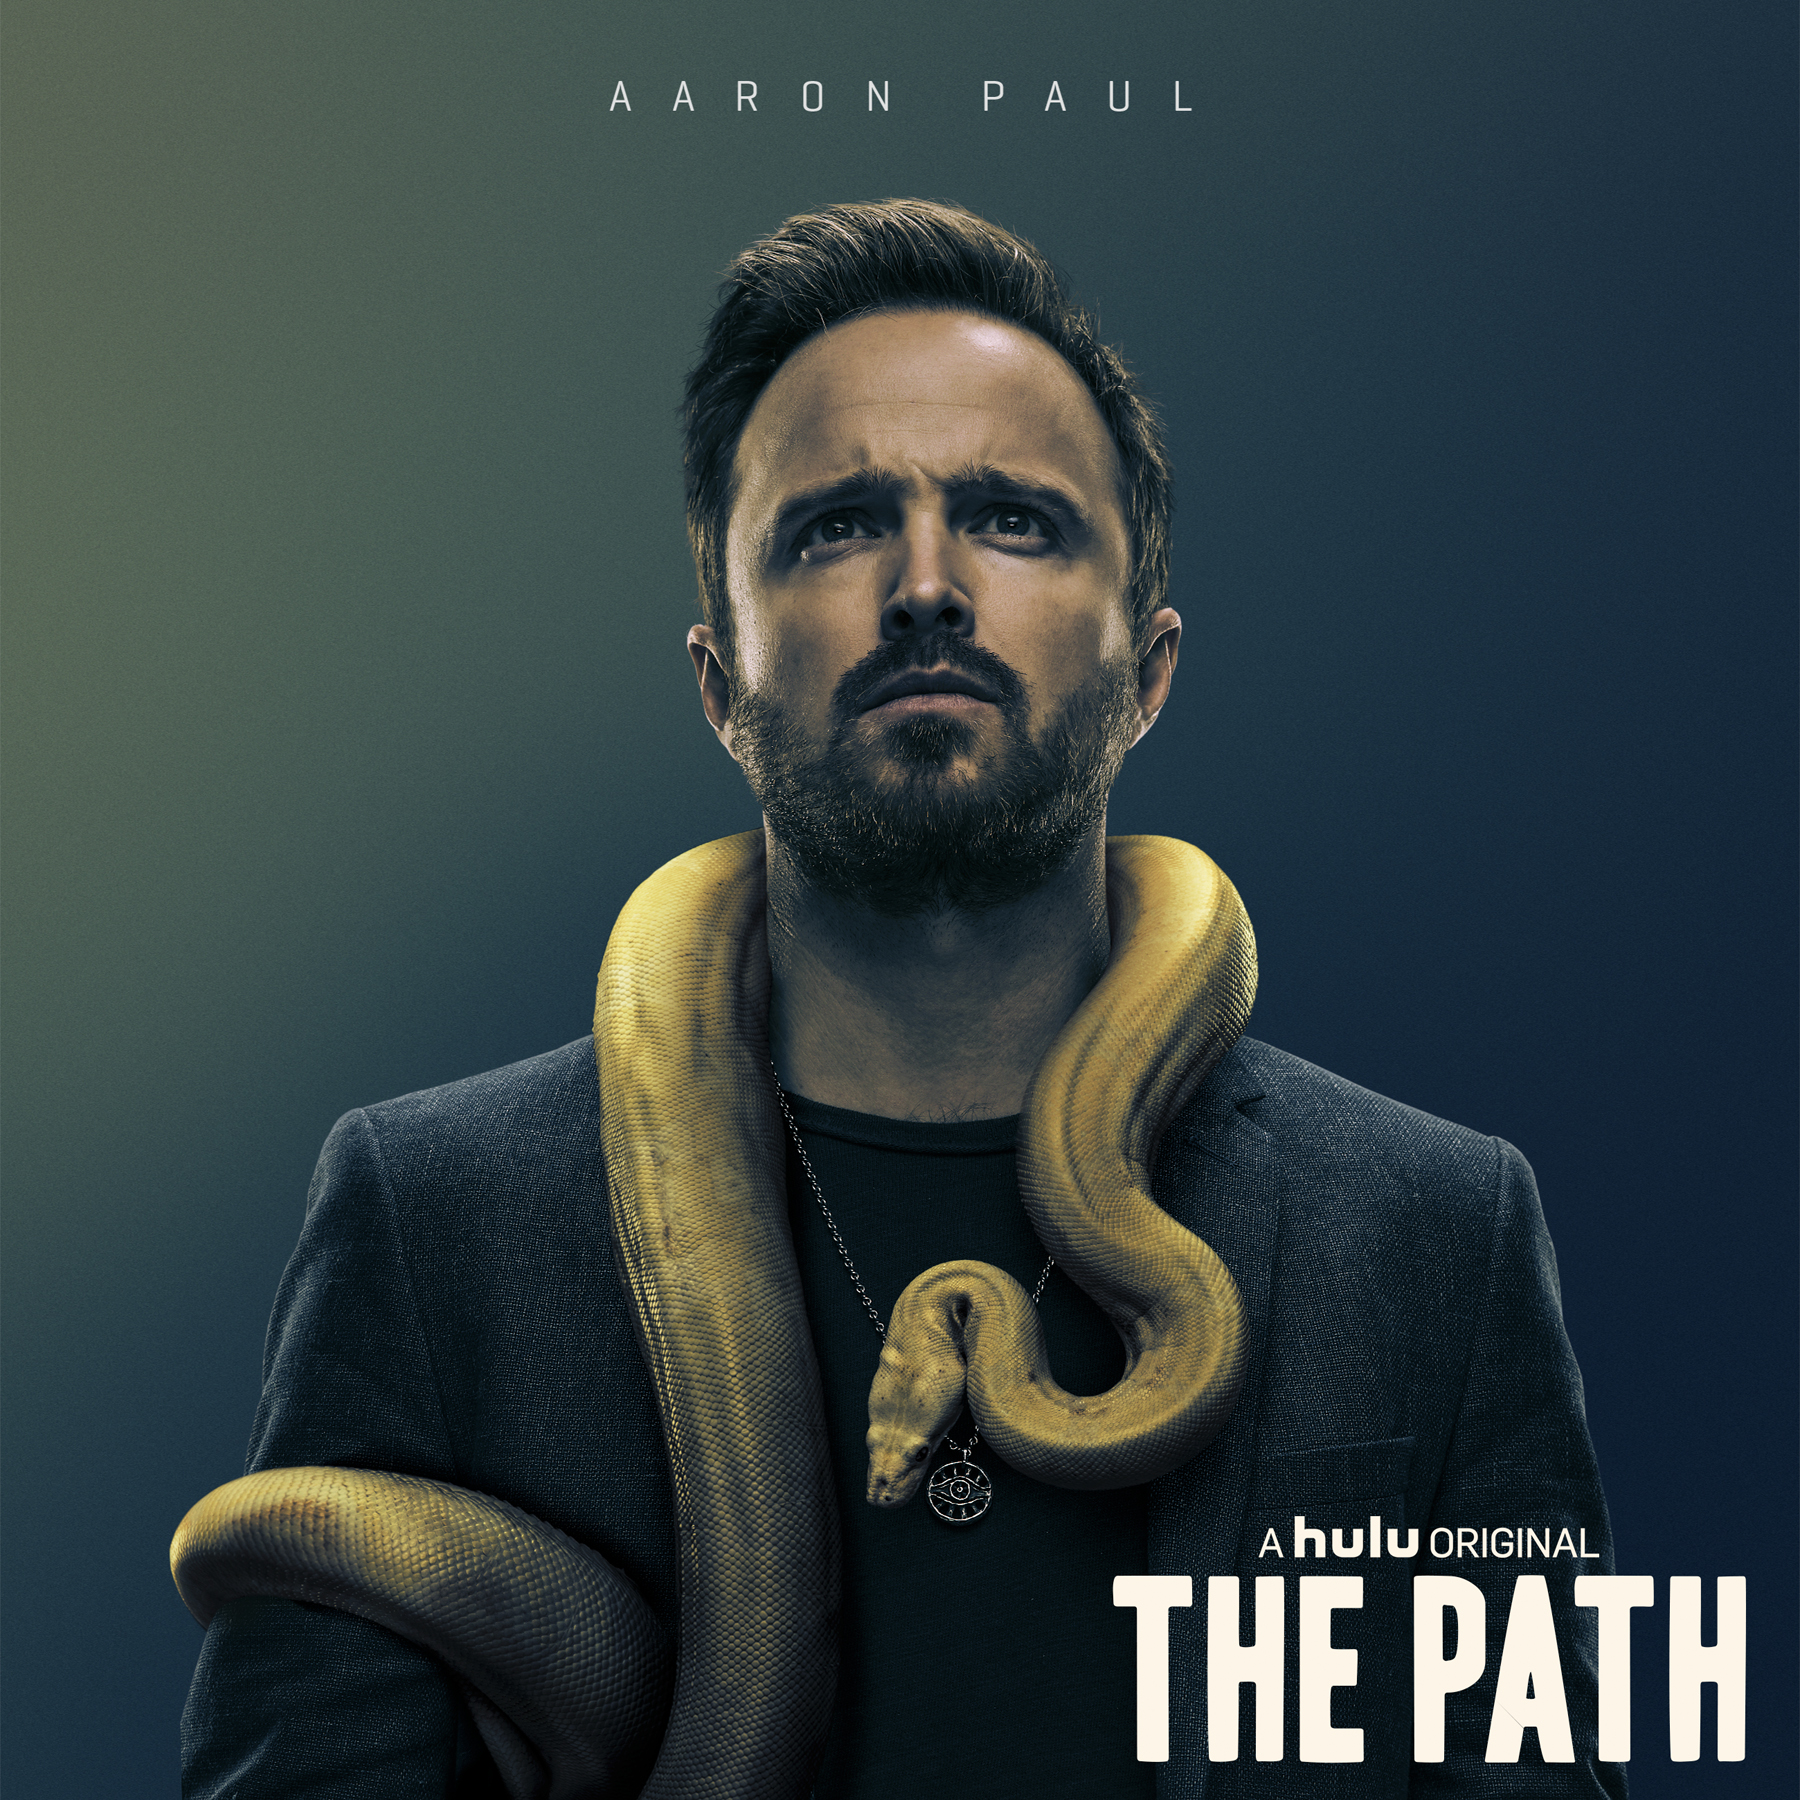 Aaron Paul in The Path